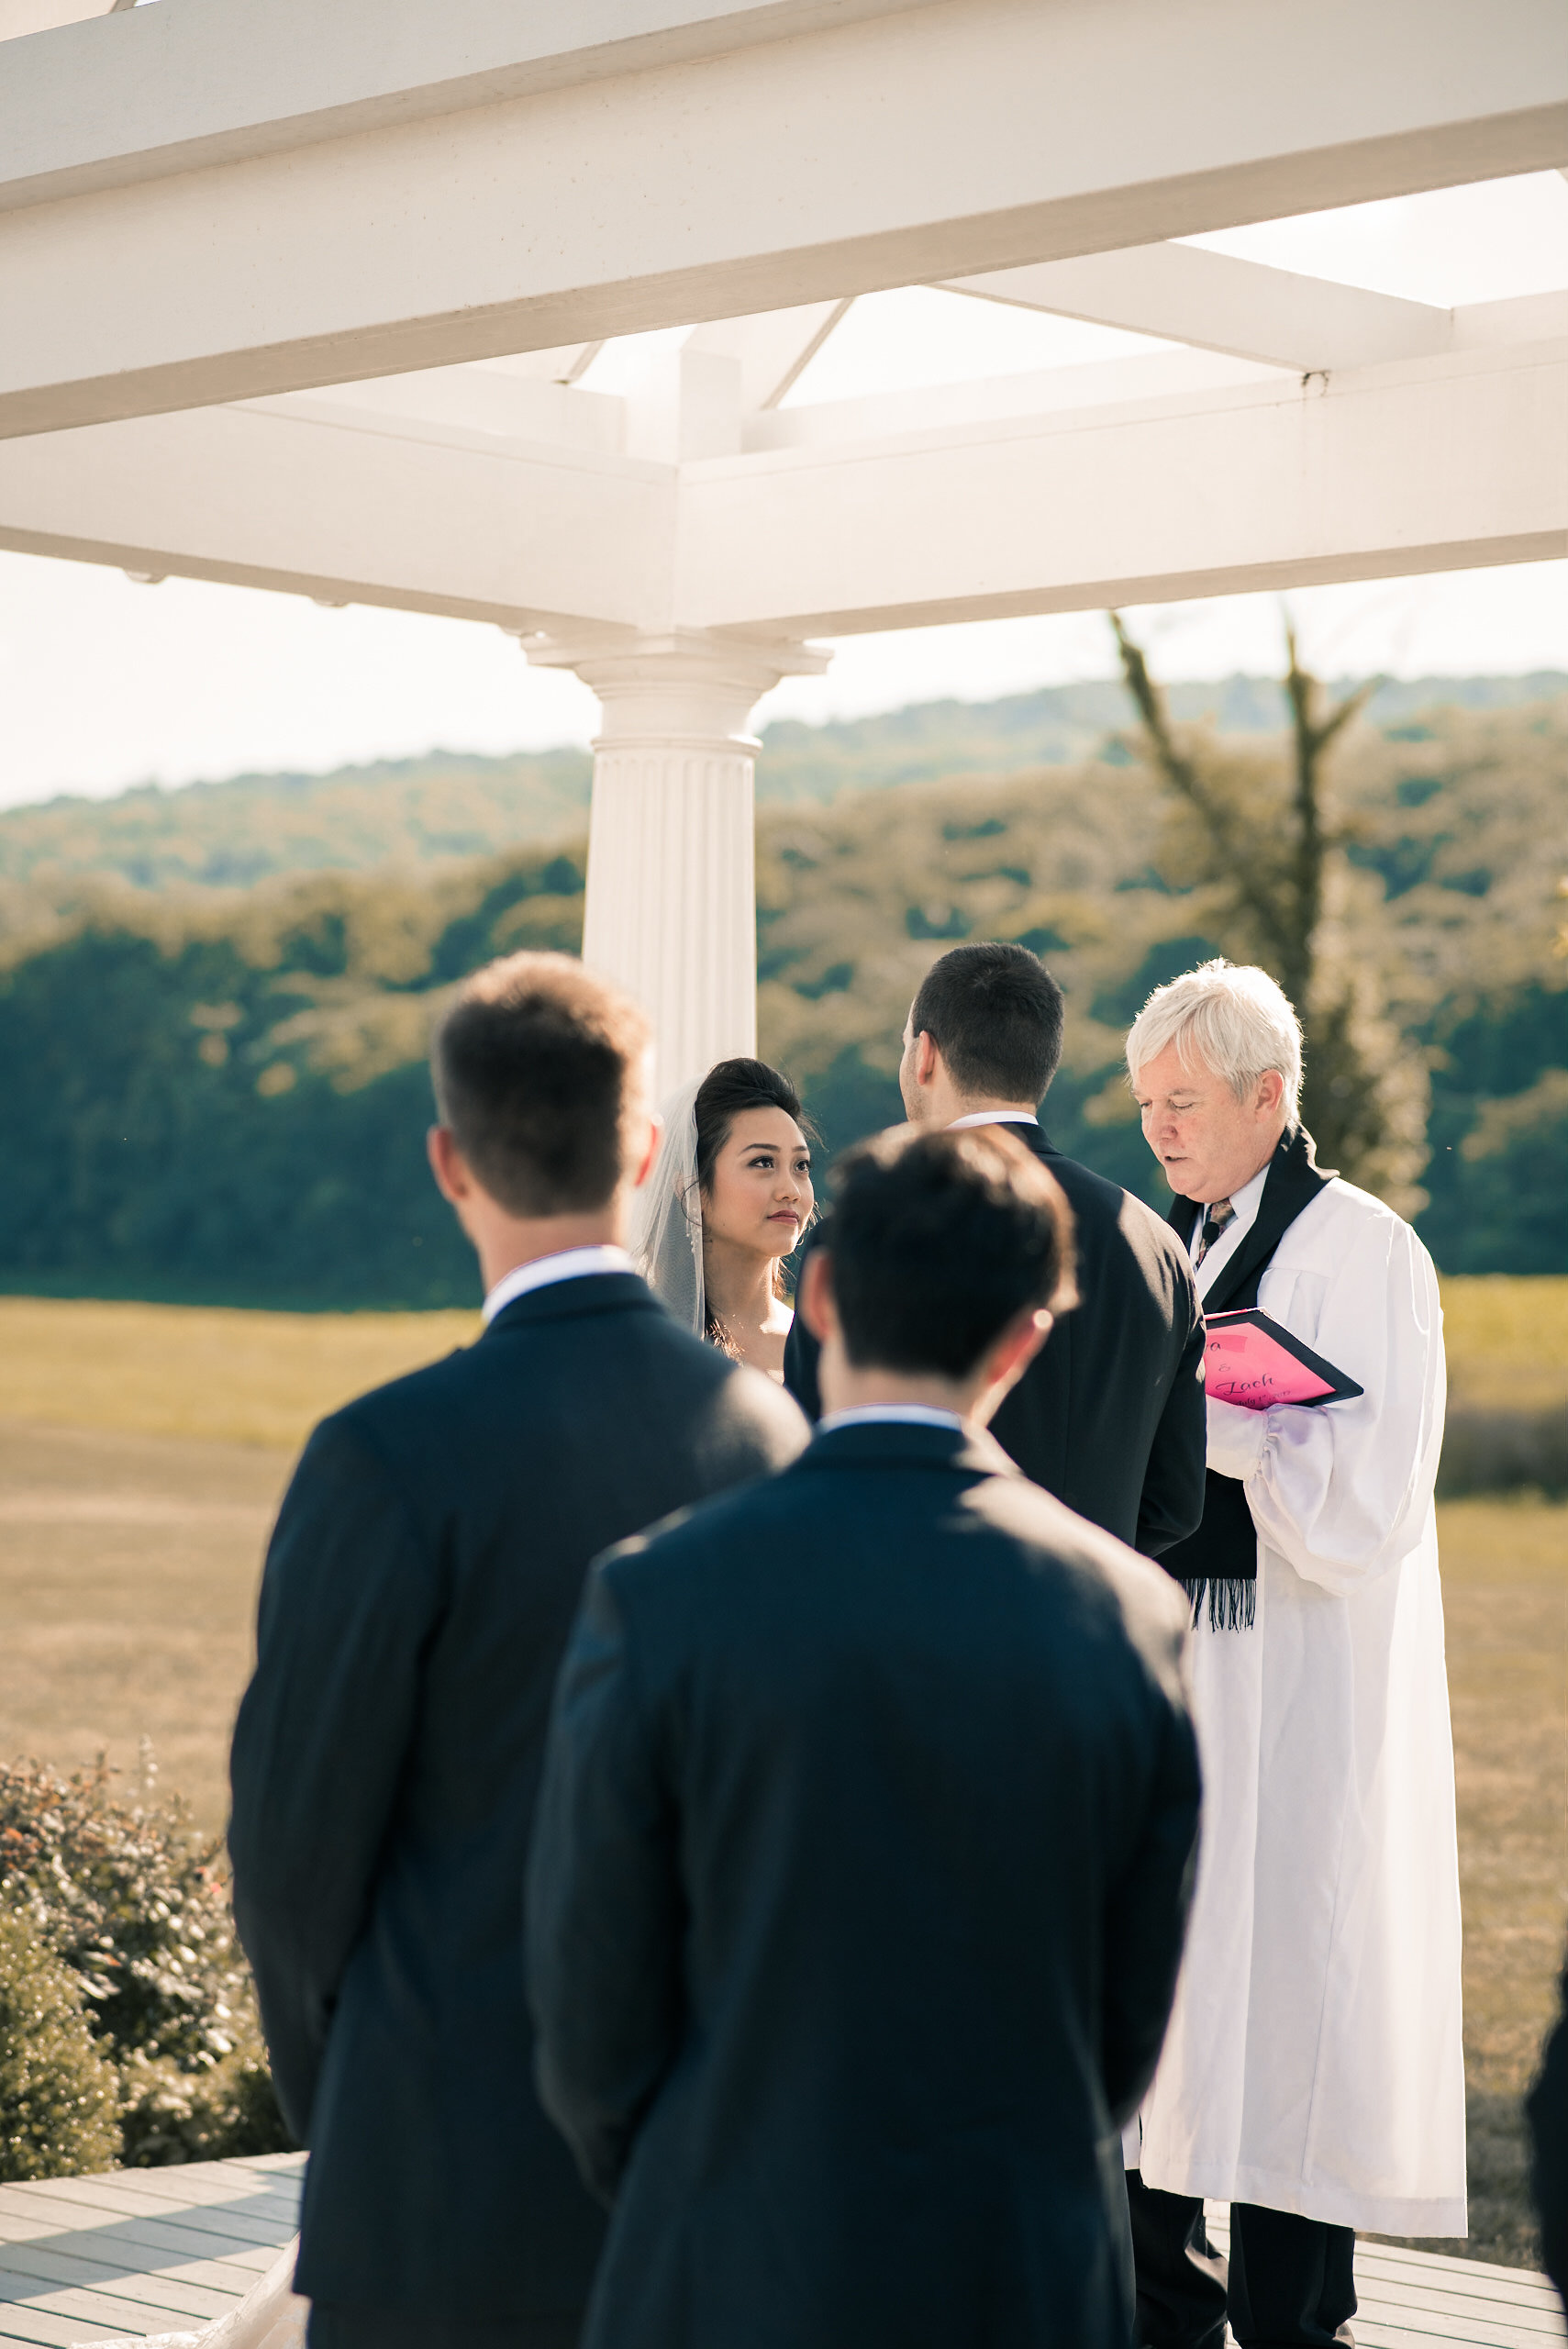 Bride and groomsmen during ceremony